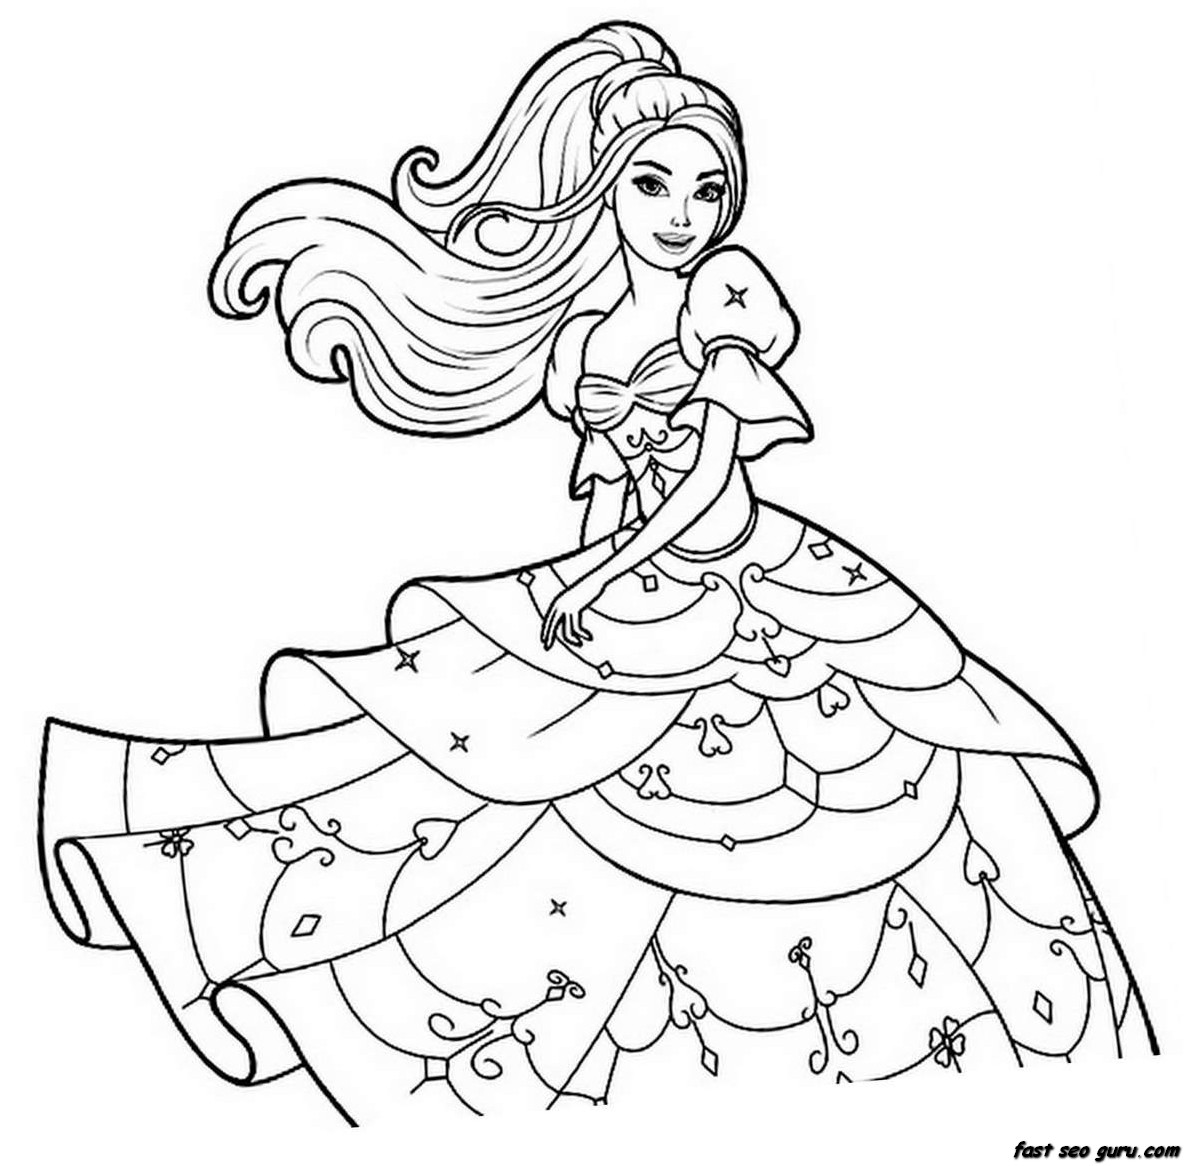 barbie print out coloring pages - photo#3